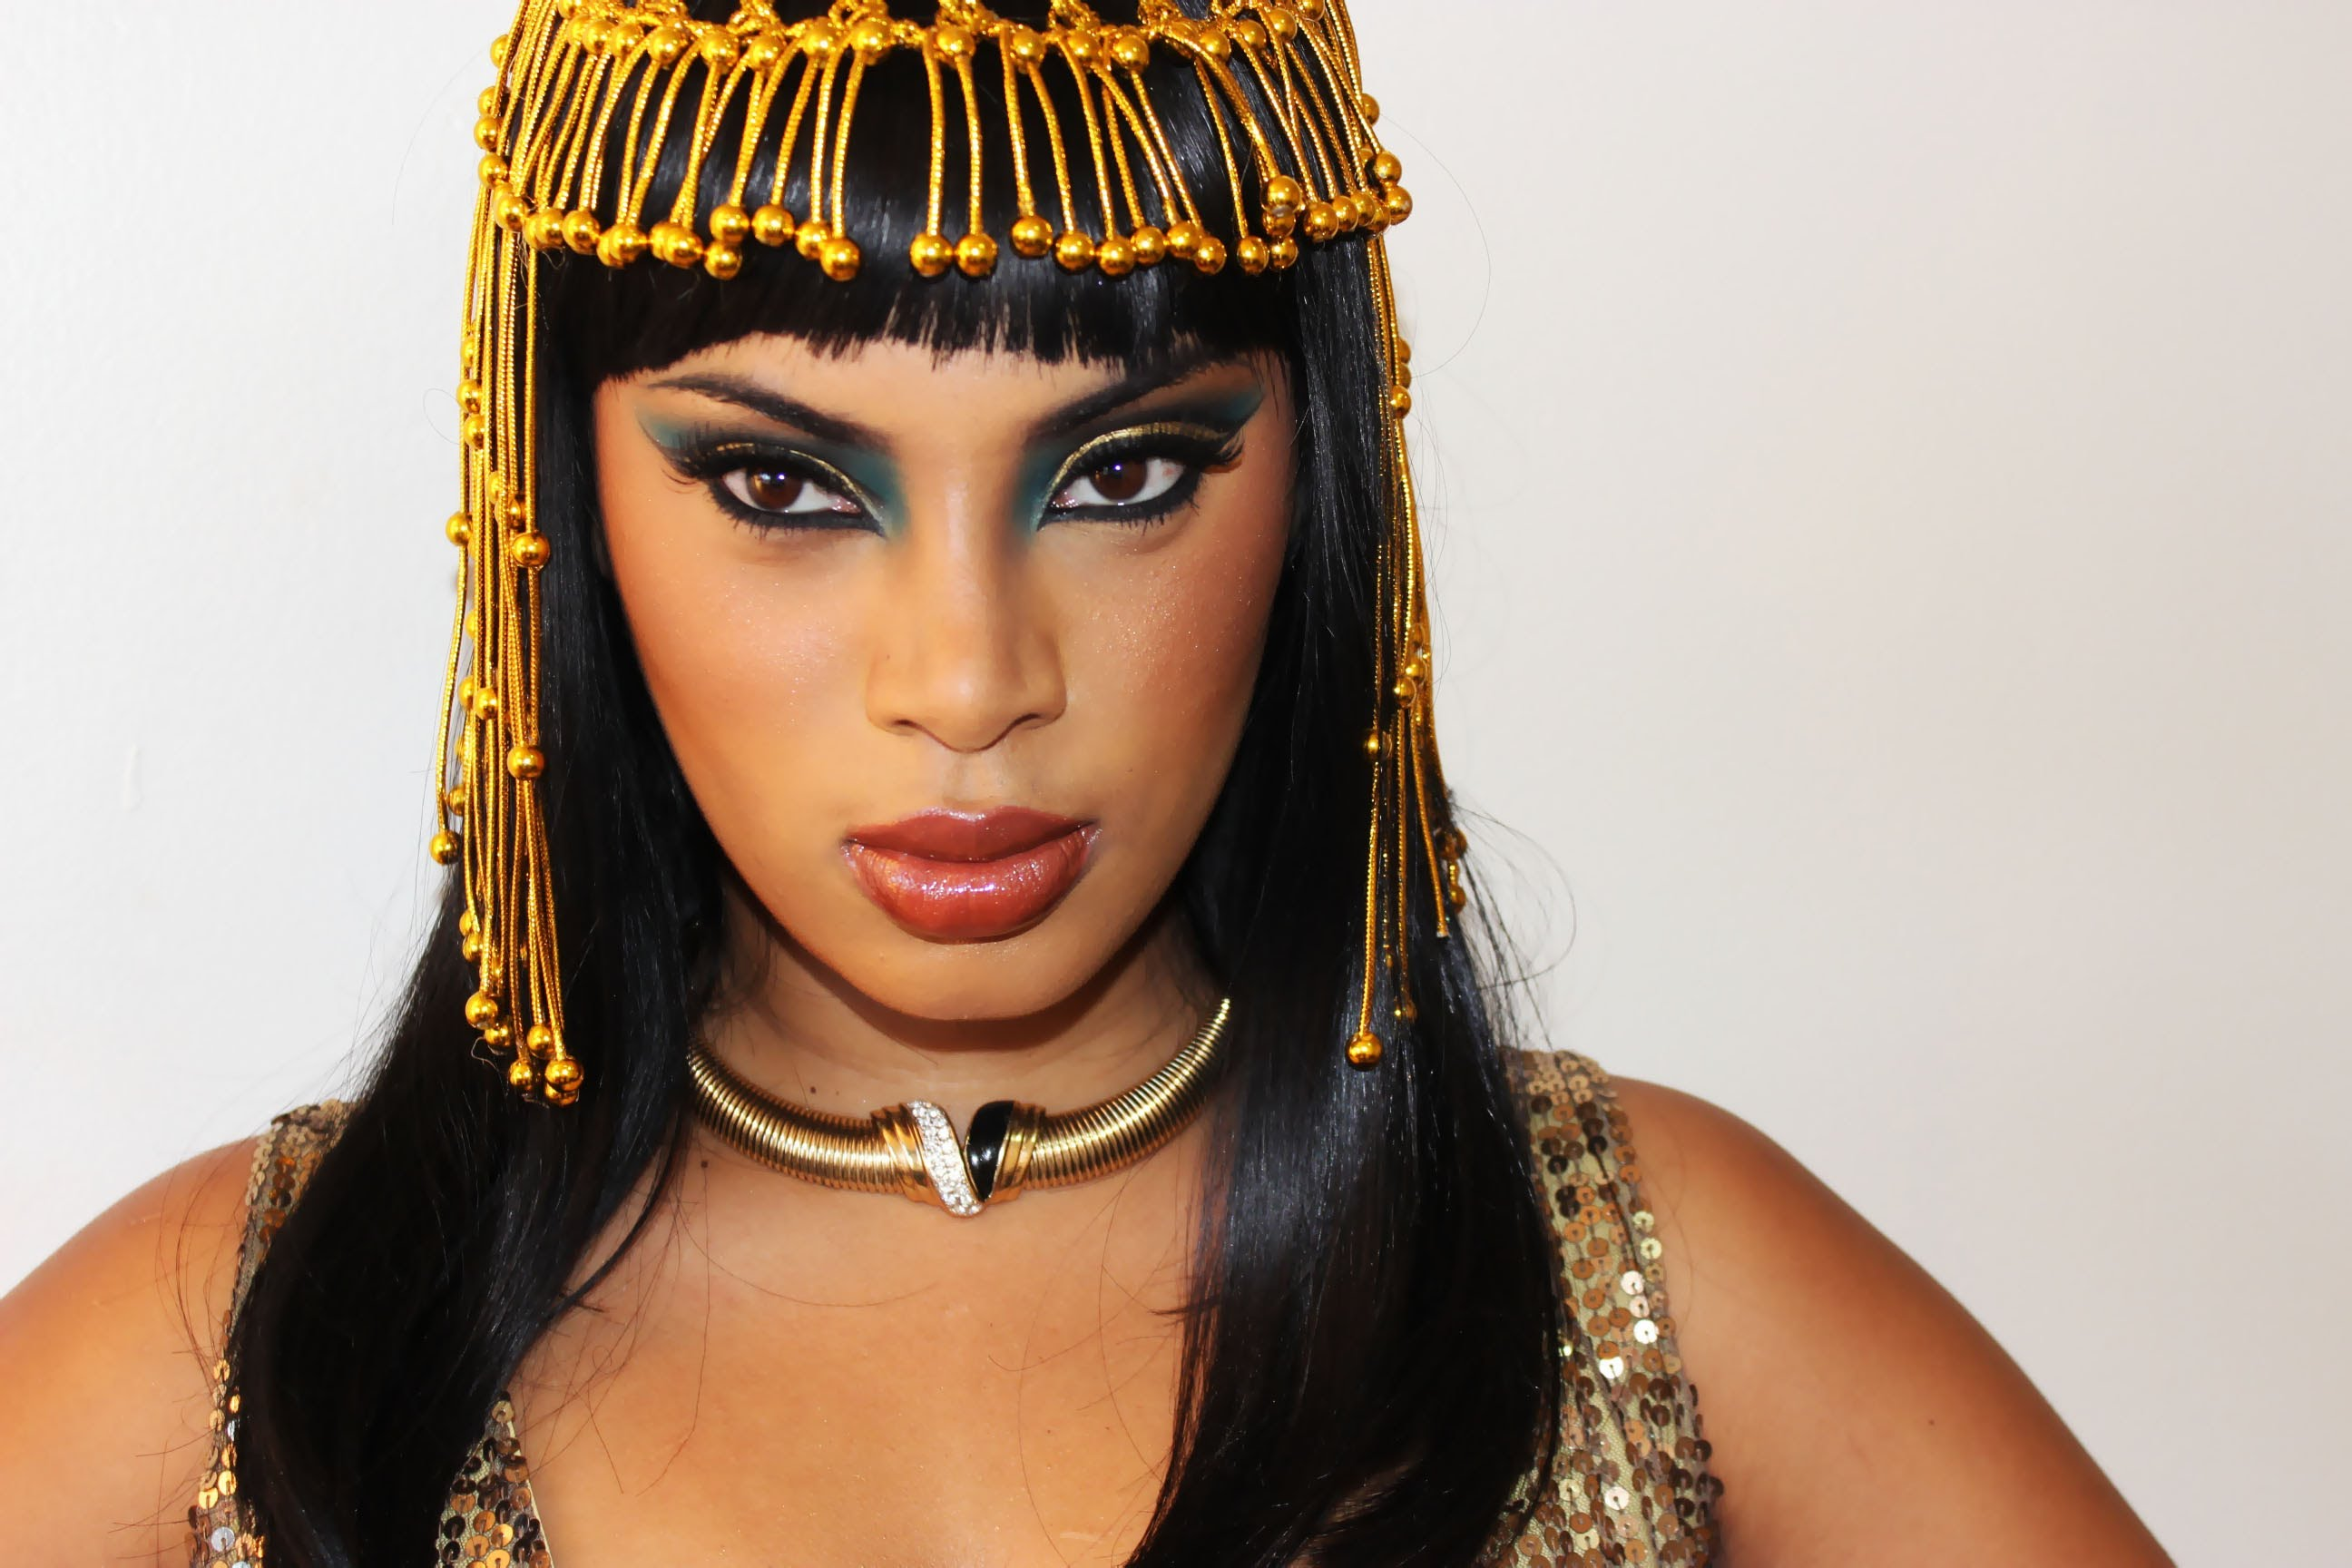 H D Picture Of Queen Cleopatra: Cleopatra Wallpapers High Quality